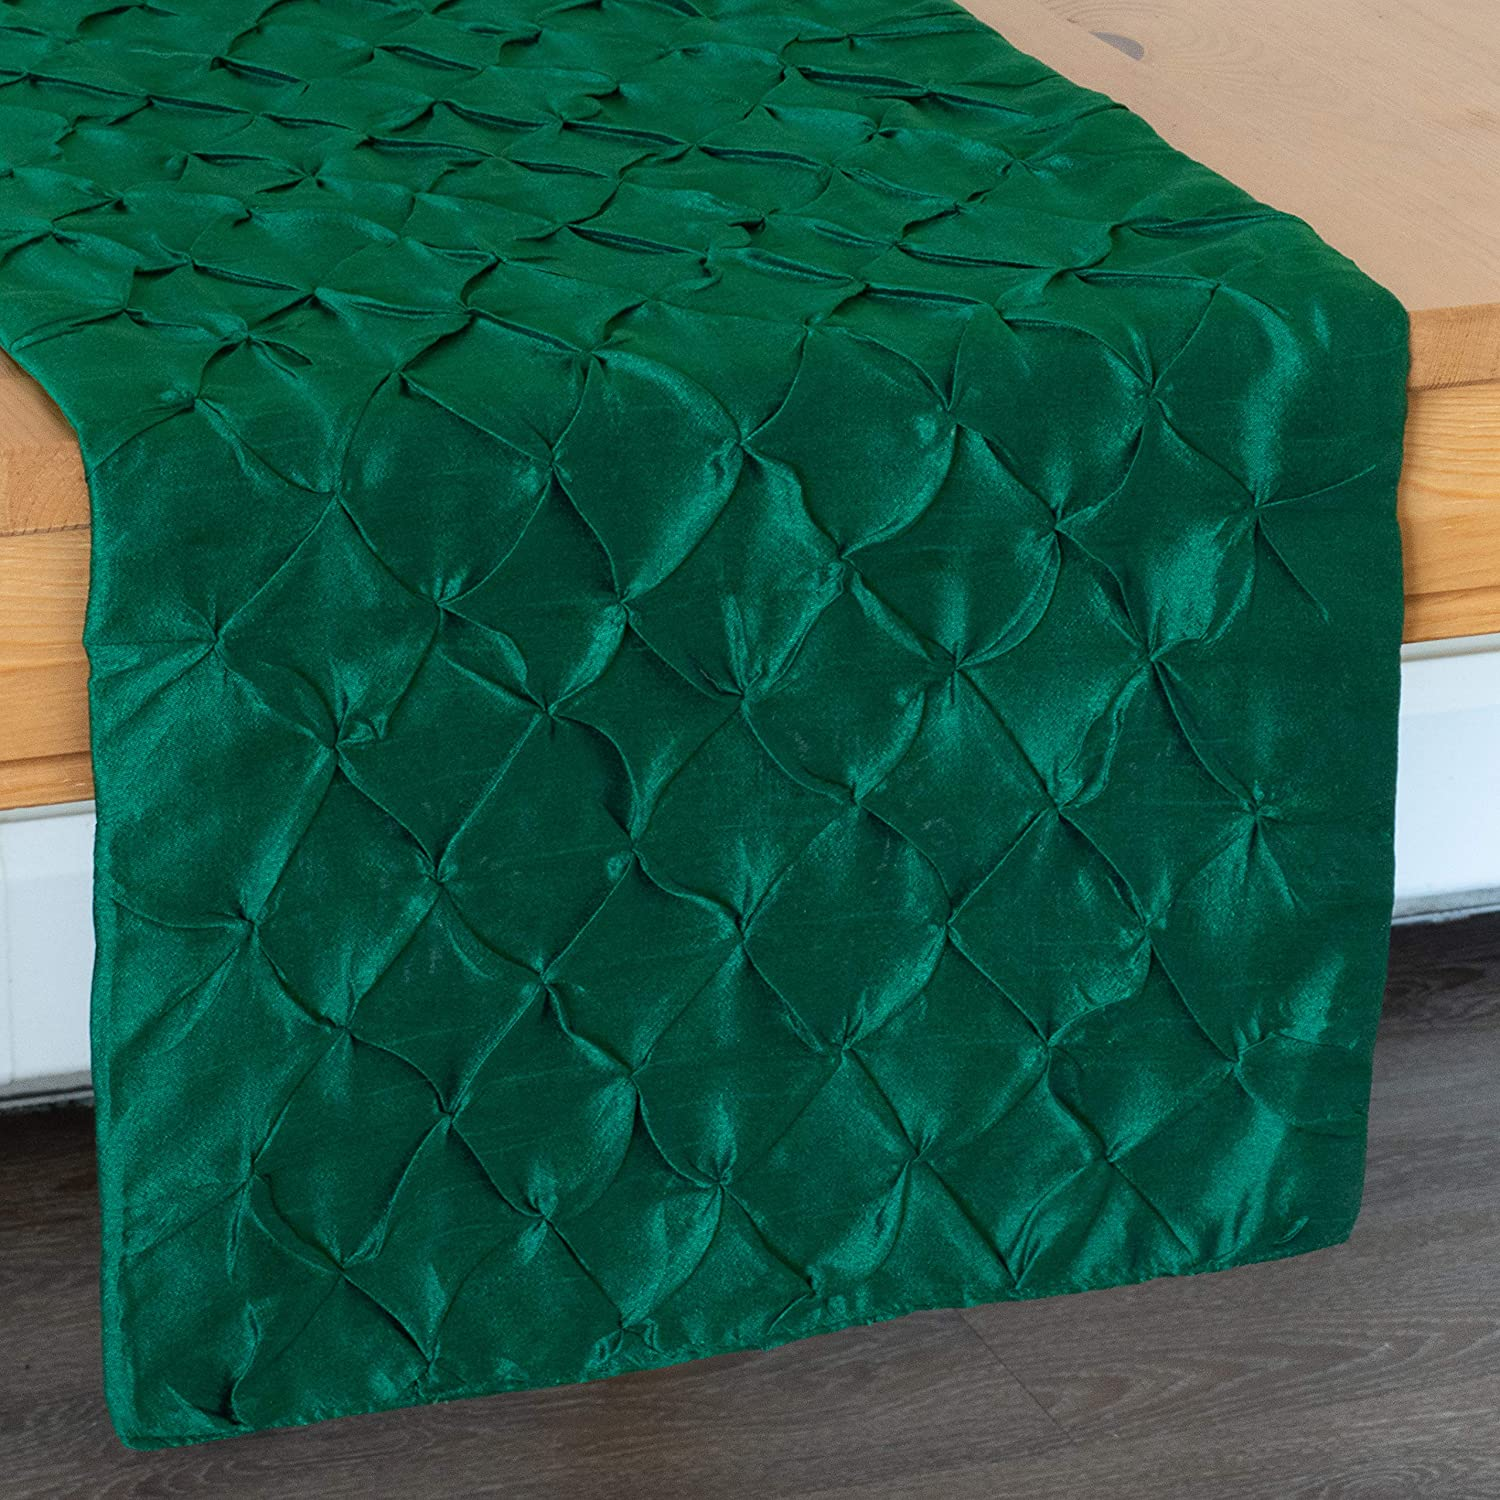 Emerald Green Linen Dresser Scarf Table Runners Pinch Pleat Fabric Lined | Properly Finished, No Fray Edges | for Home, Kitchen, Dining Room, Holiday, Wedding Party Décor - 14x36 inch, Pack of 1